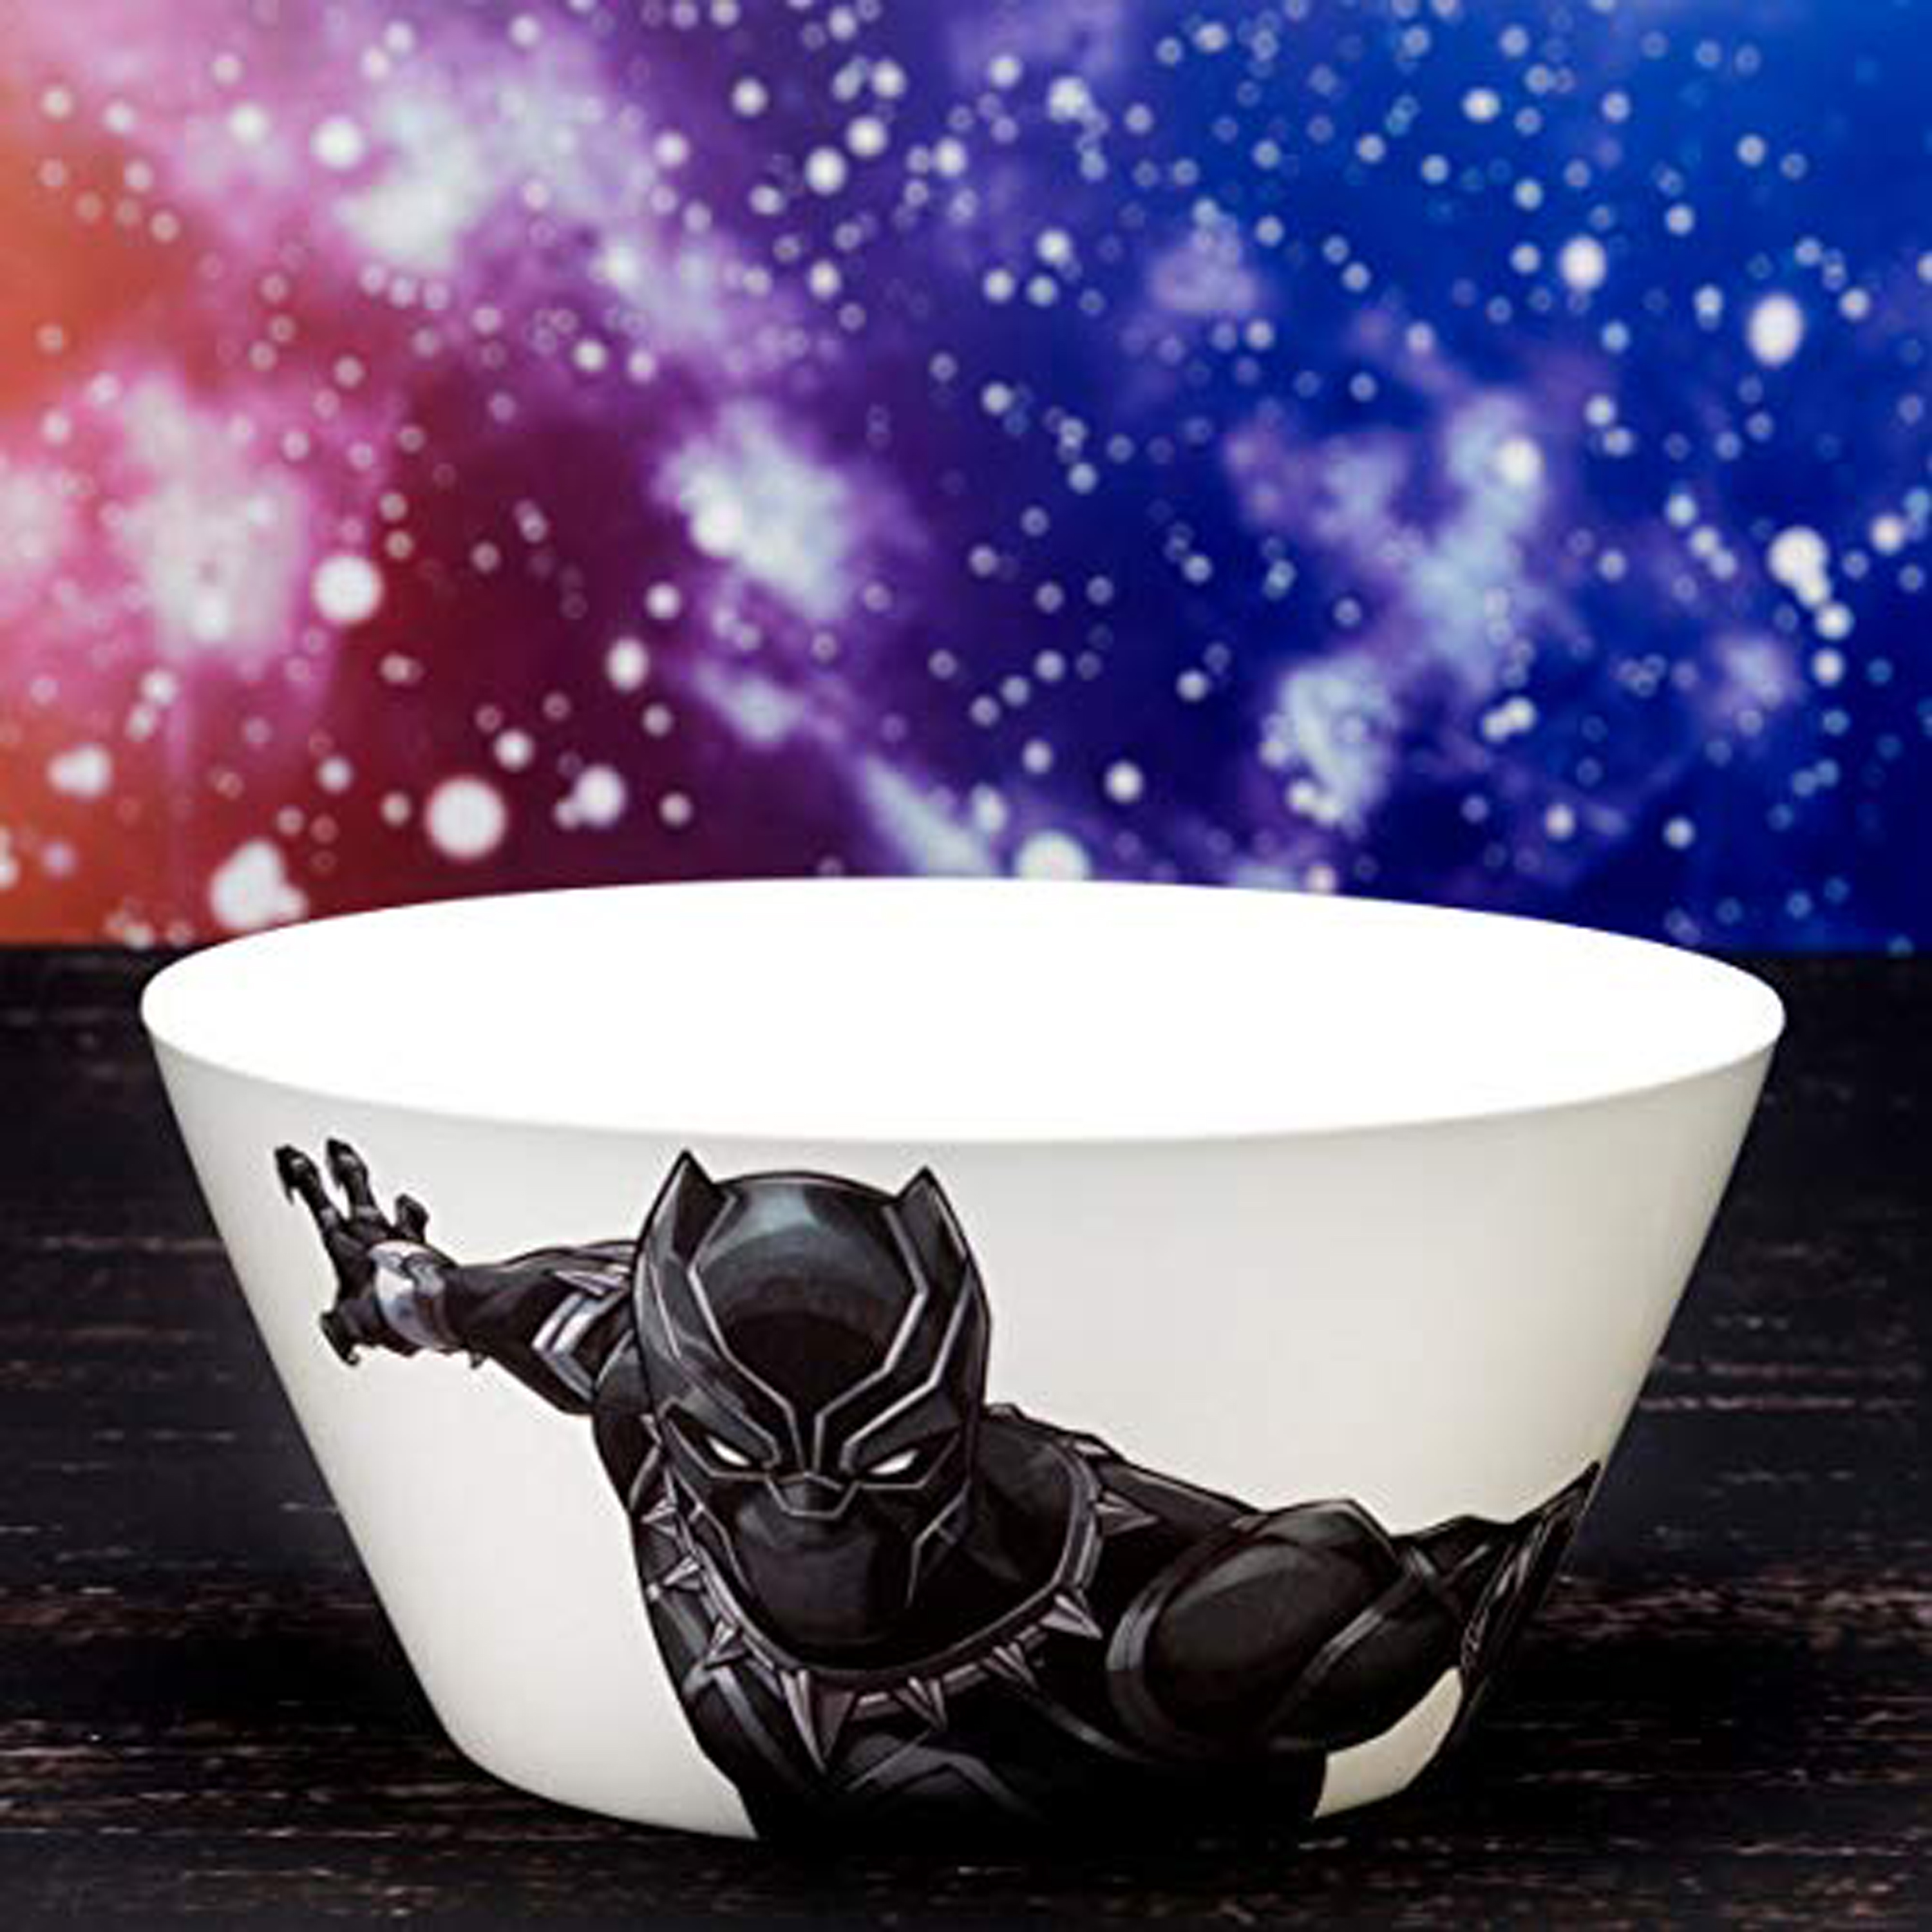 Marvel Comics Dinnerware Set, Black Panther & The Avengers, 2-piece set slideshow image 11